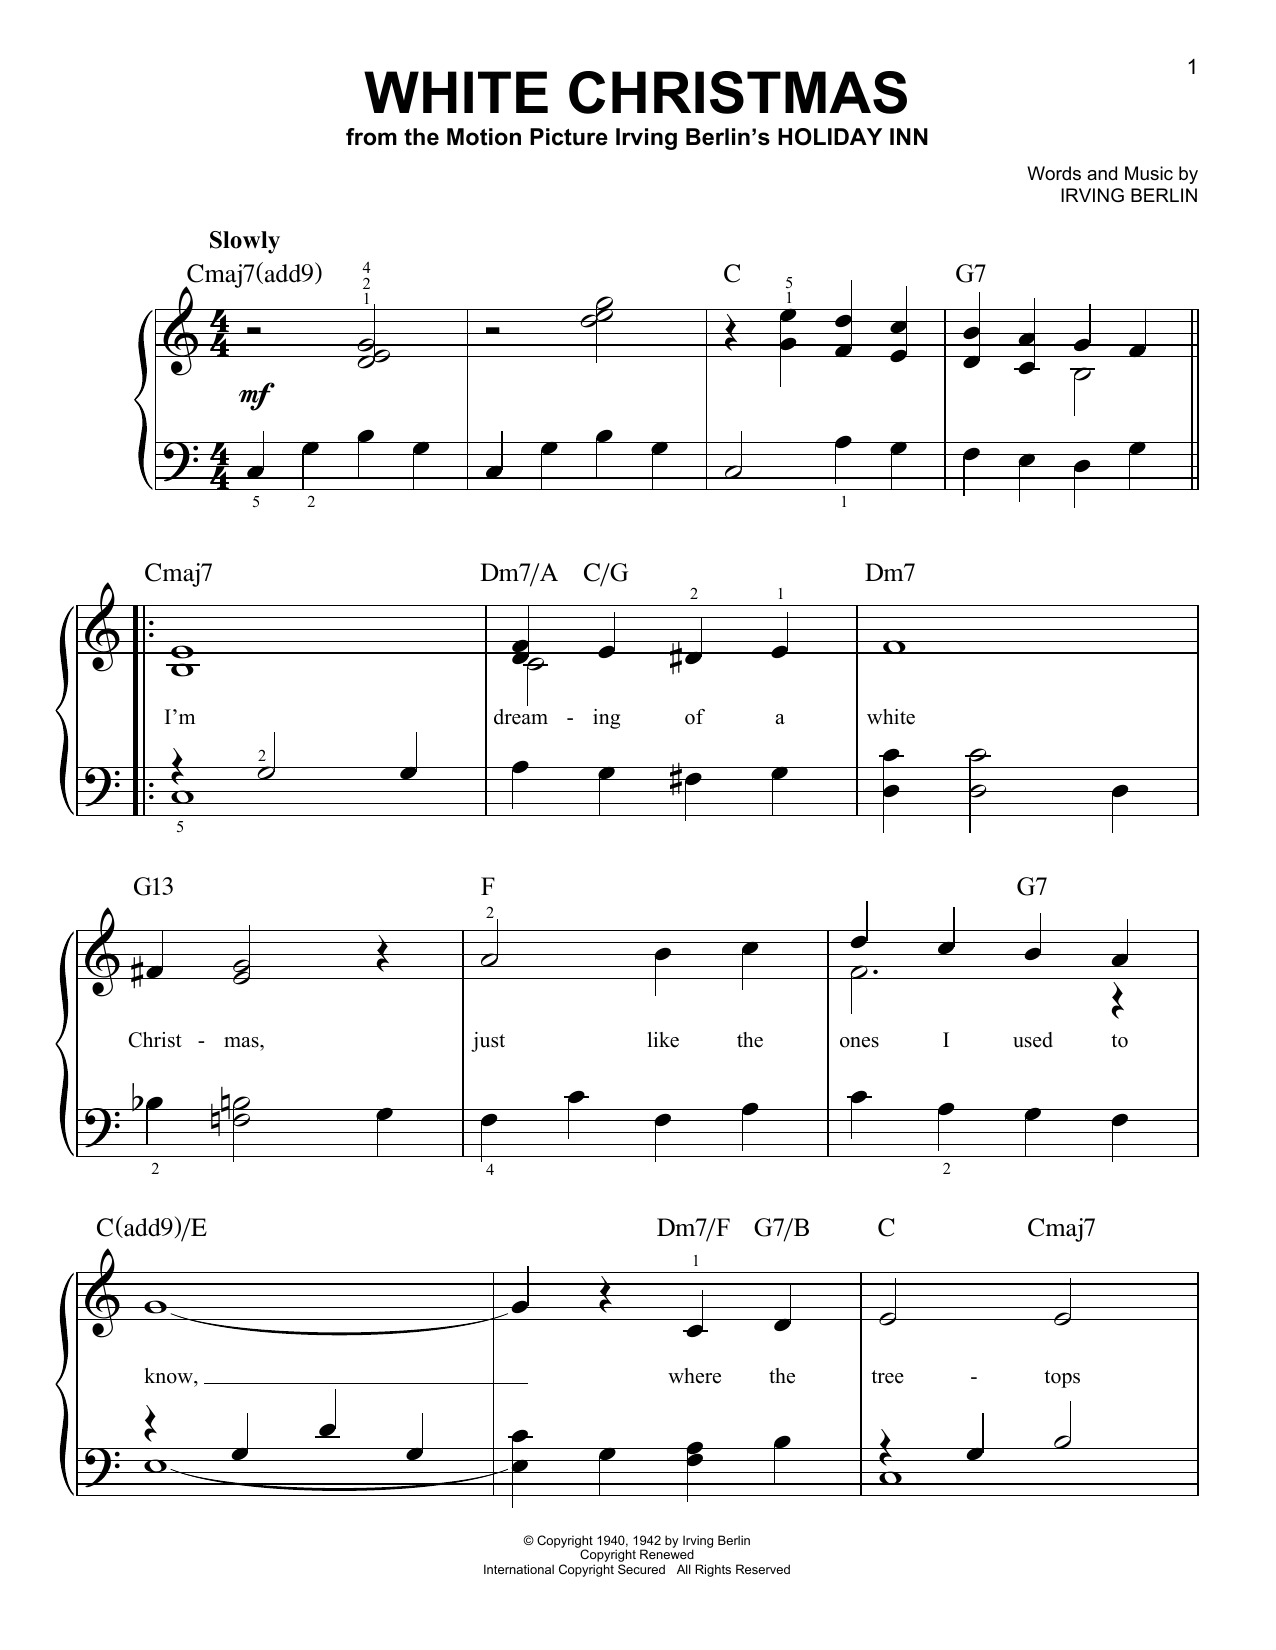 Michael Buble White Christmas.Michael Buble White Christmas Sheet Music Notes Chords Download Printable Easy Piano Sku 191774